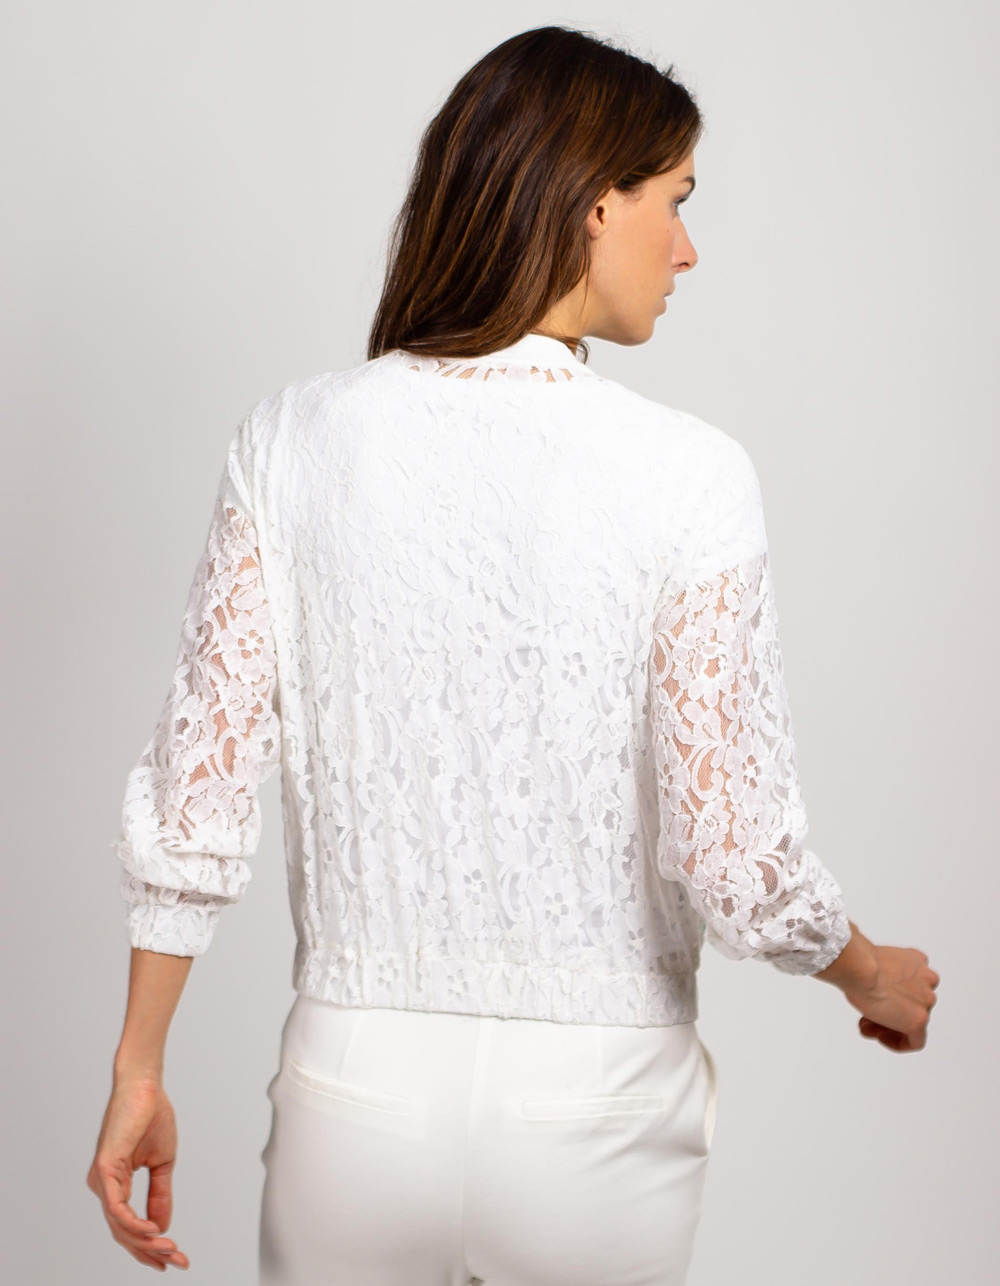 Chaqueta de blonda con bordados - Backside